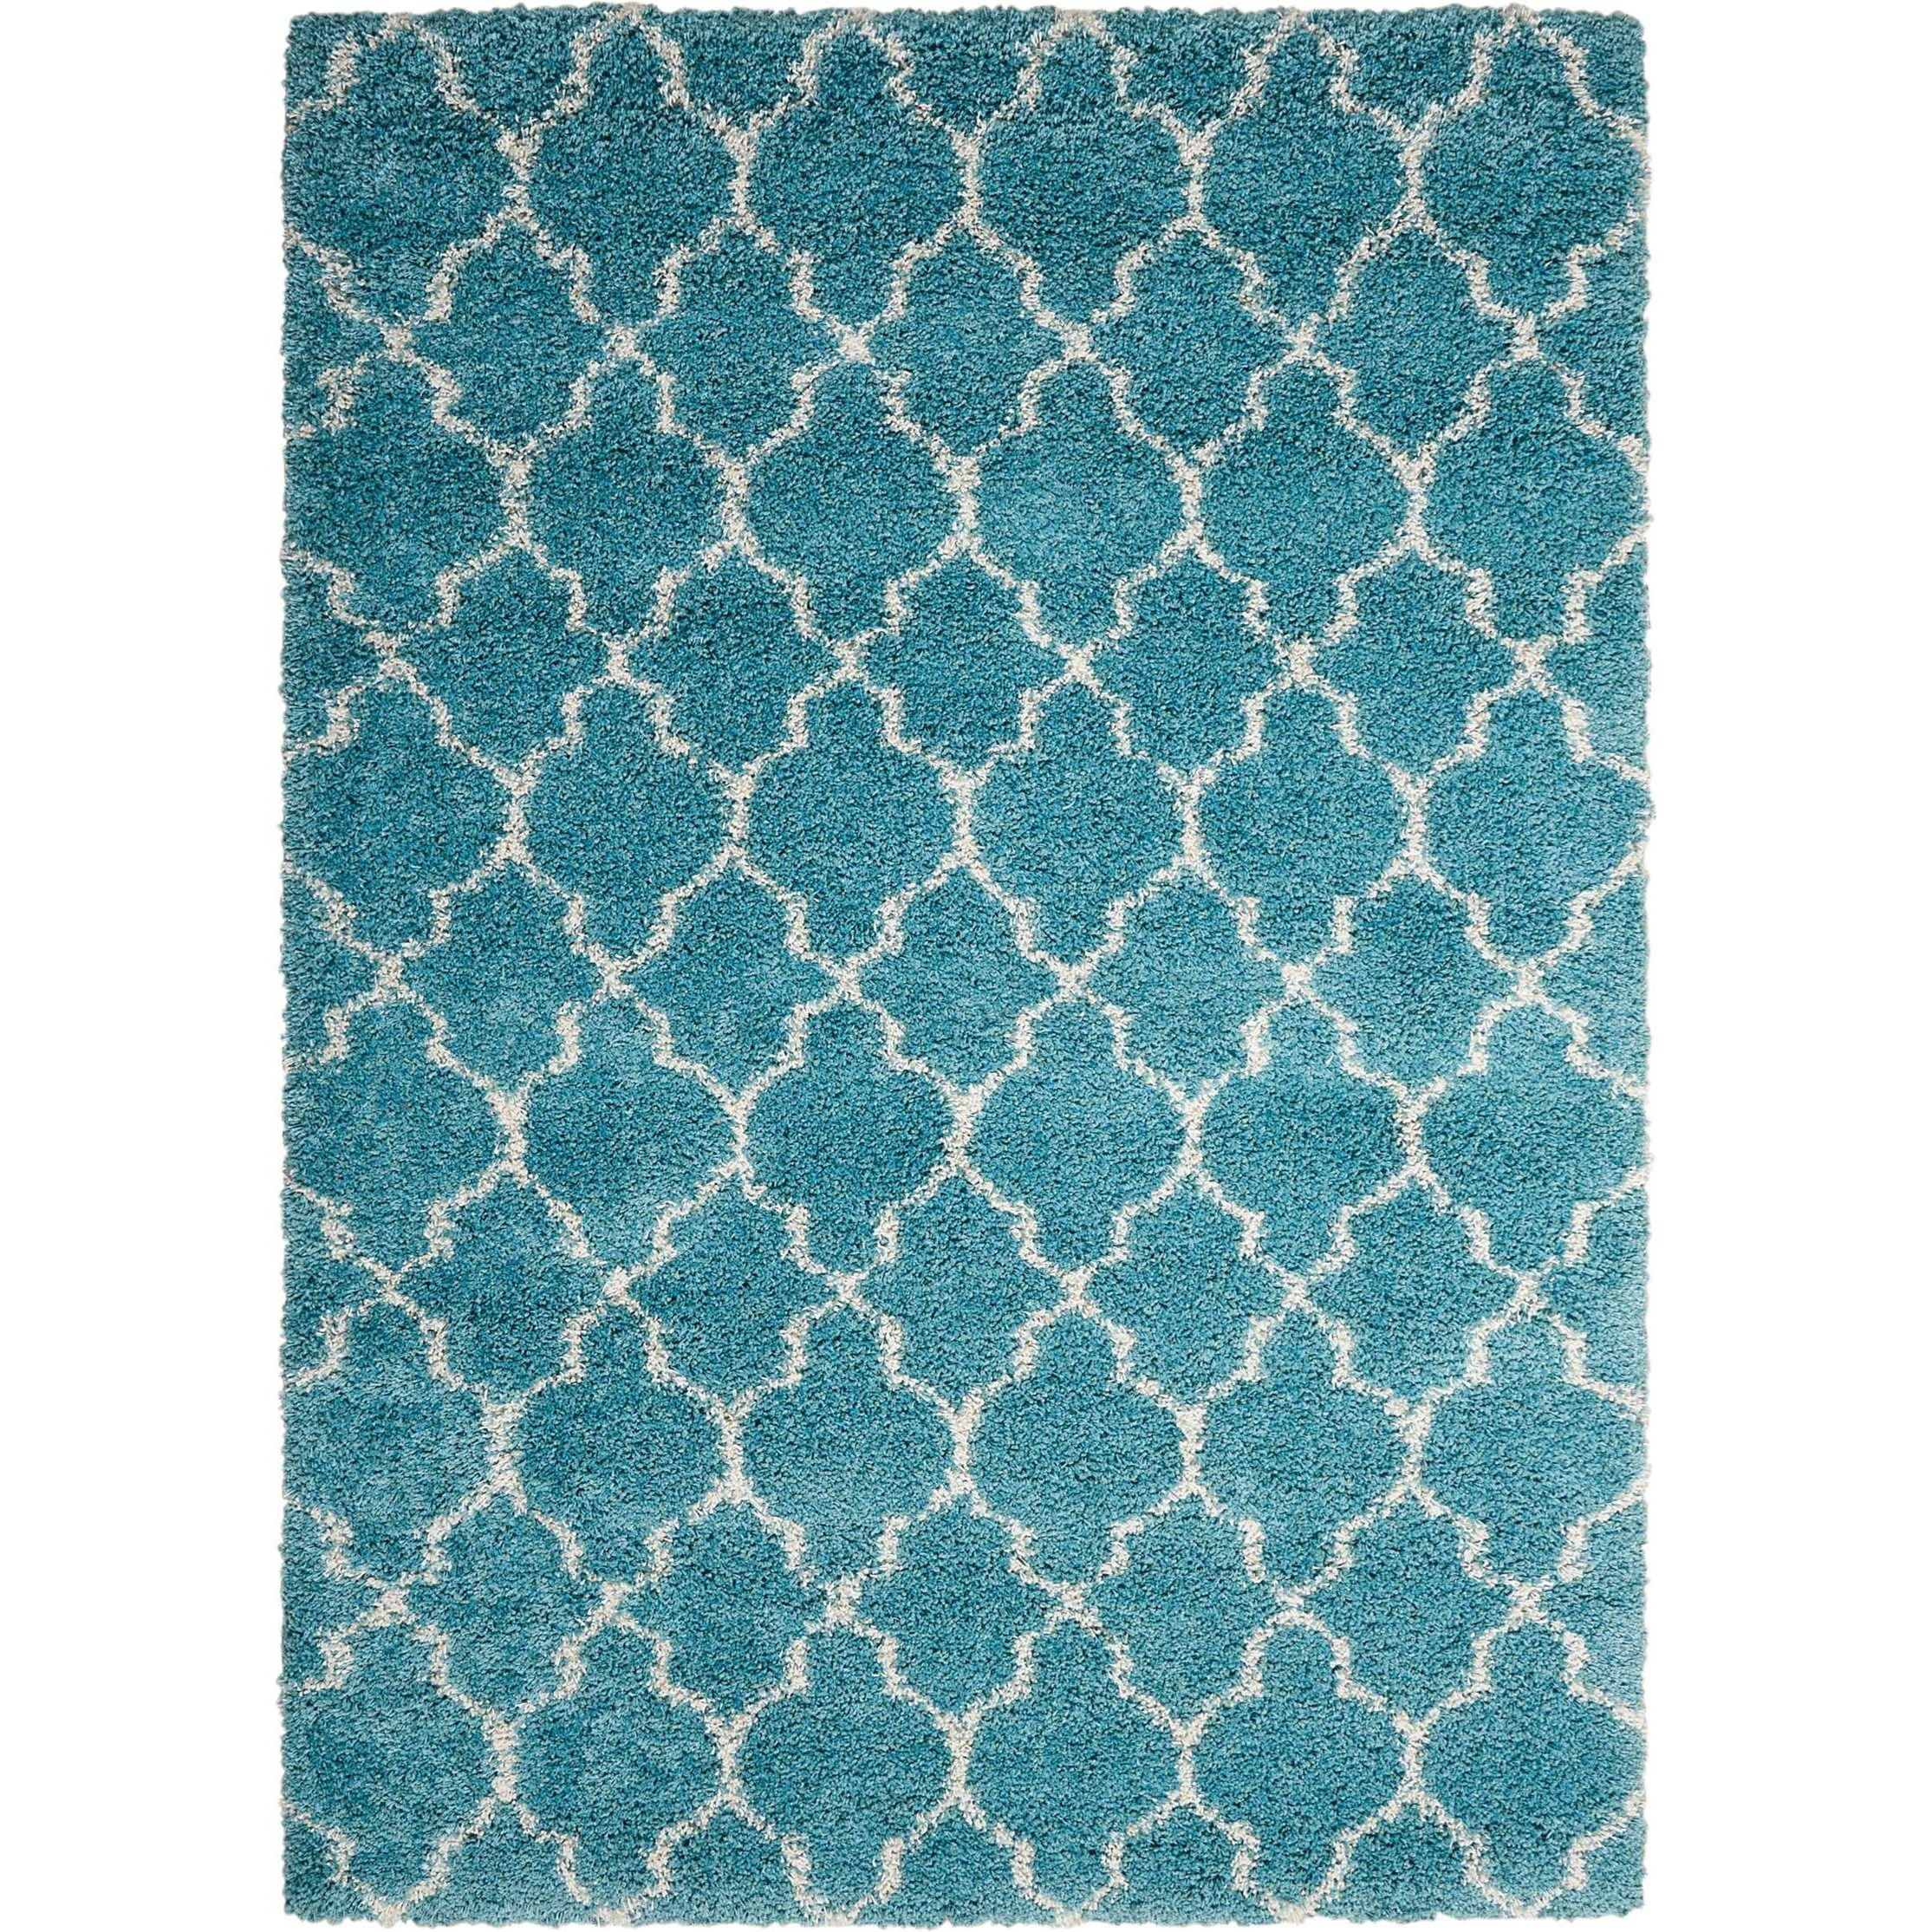 "Amore 6'7"" x 9'6"" Aqua Rectangle Rug by Nourison at Sprintz Furniture"